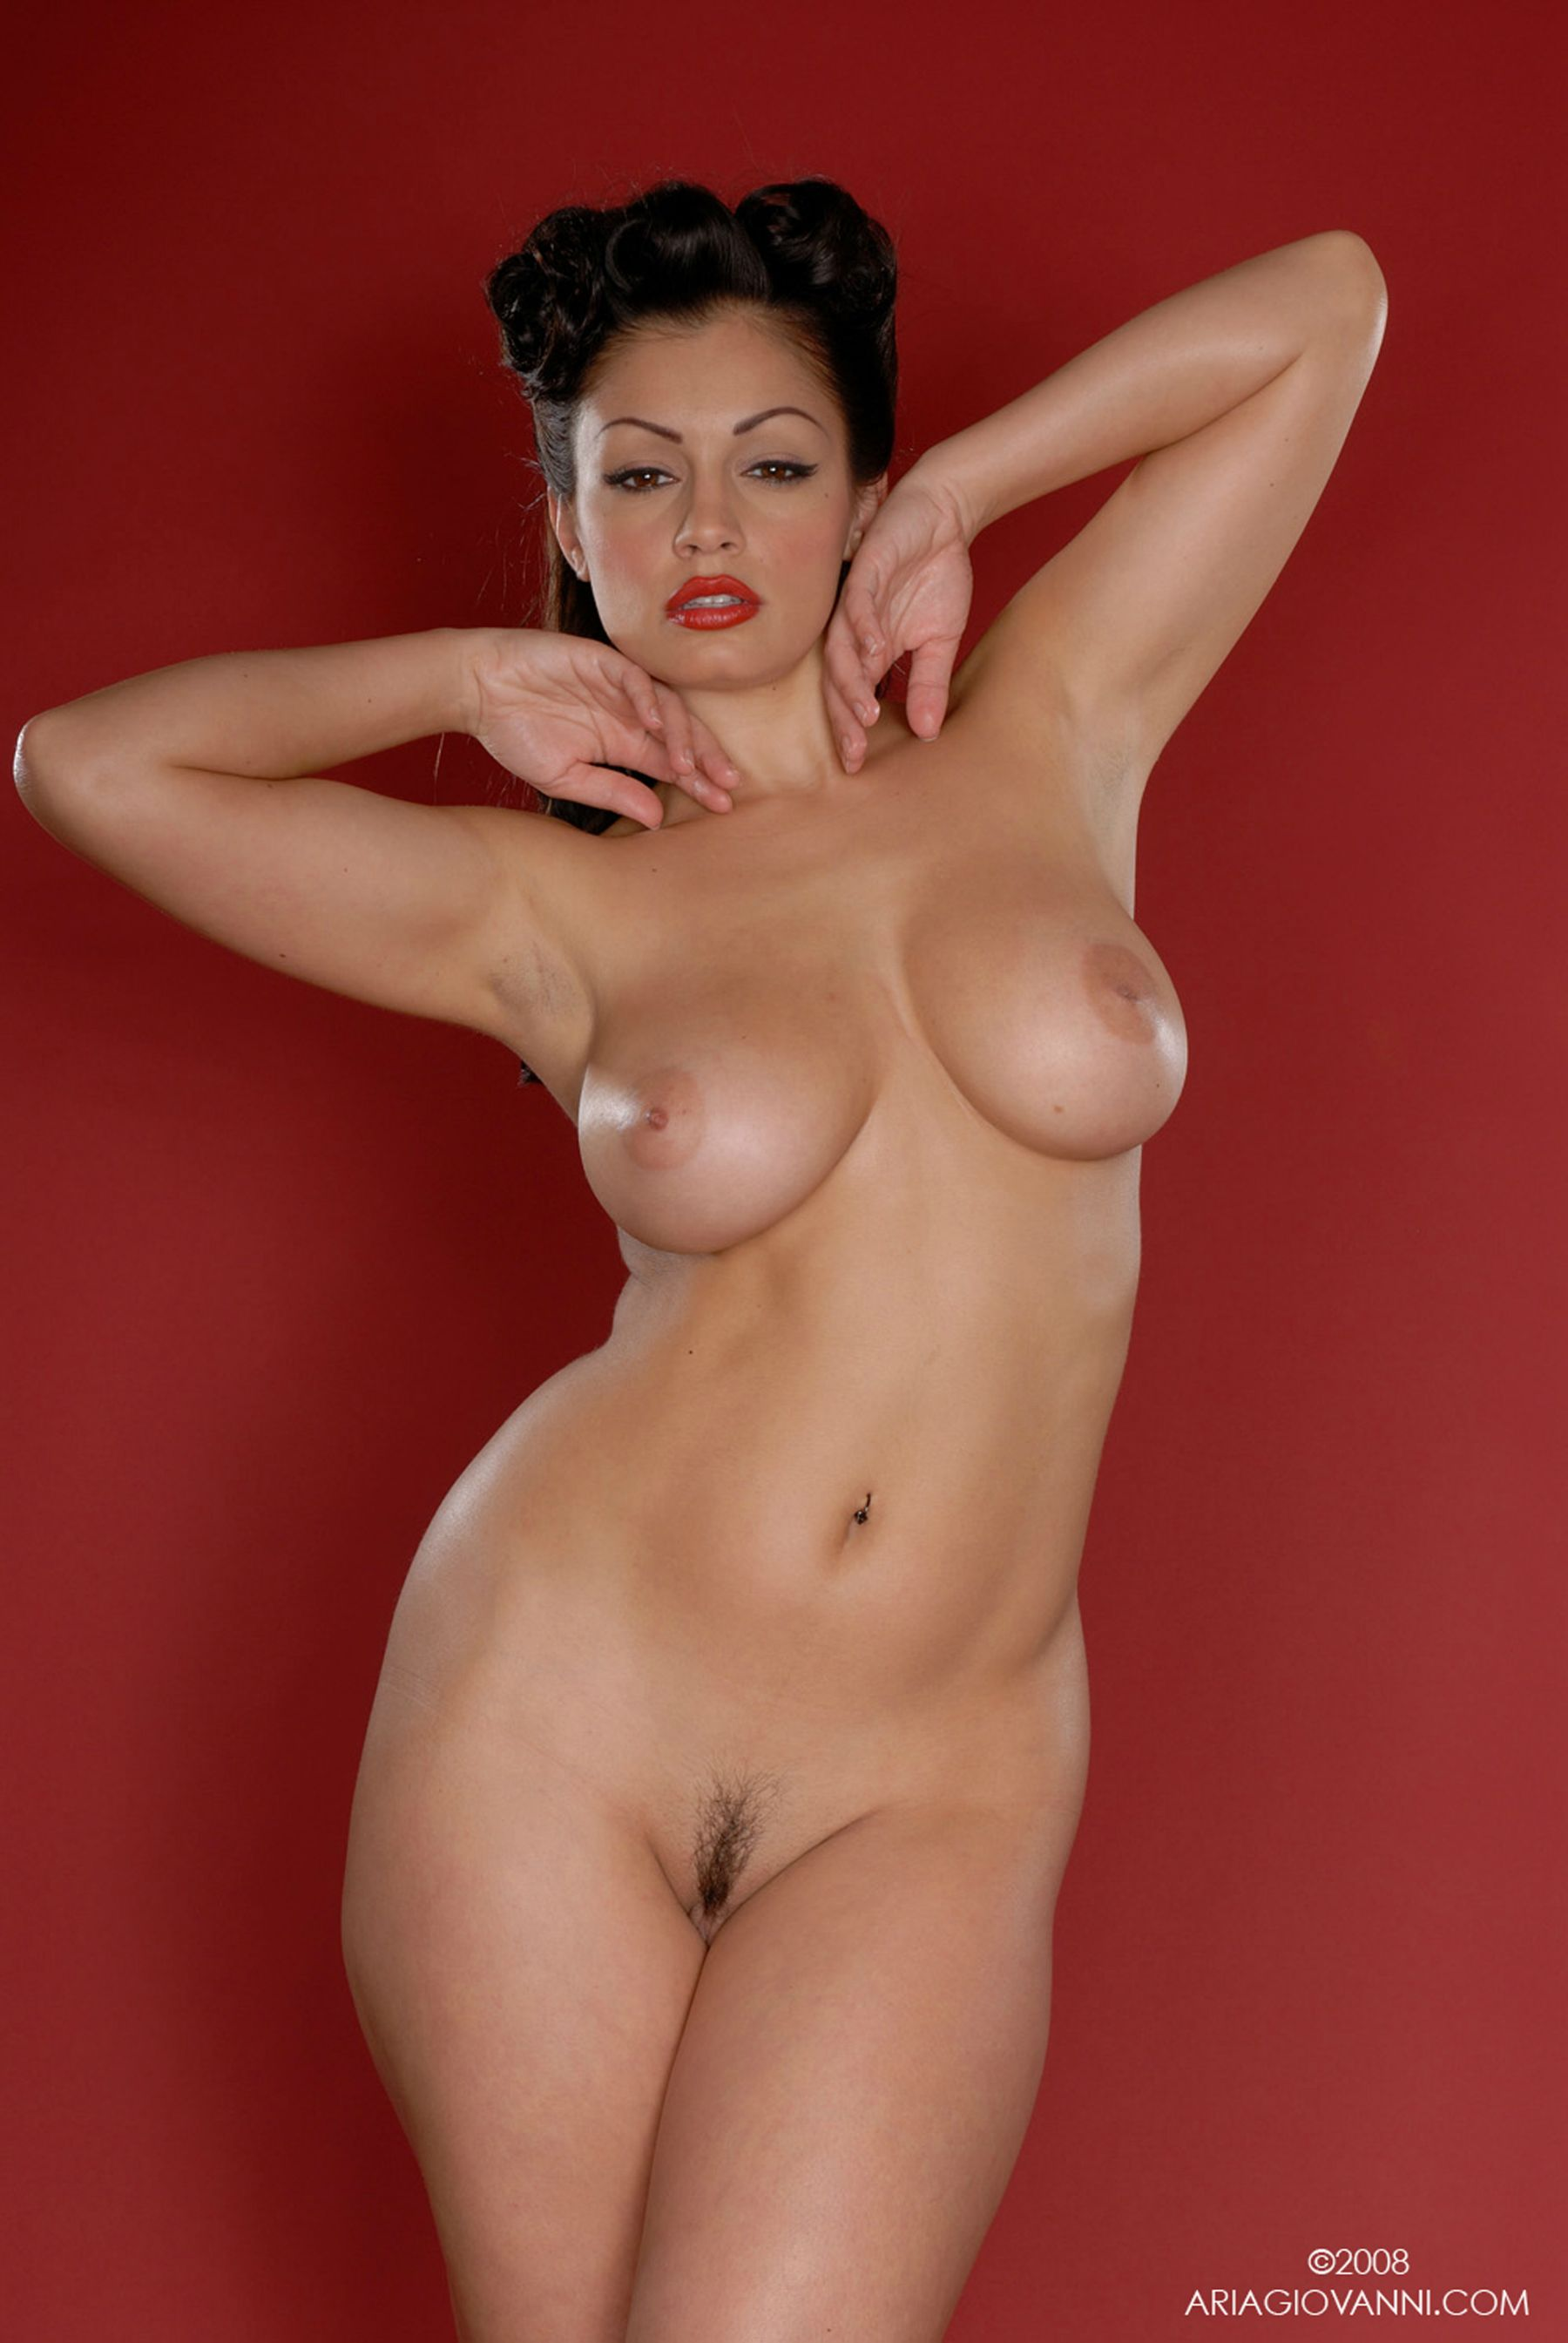 Naked Lady of the Week: Aria Giovanni | Uncouth Reflections